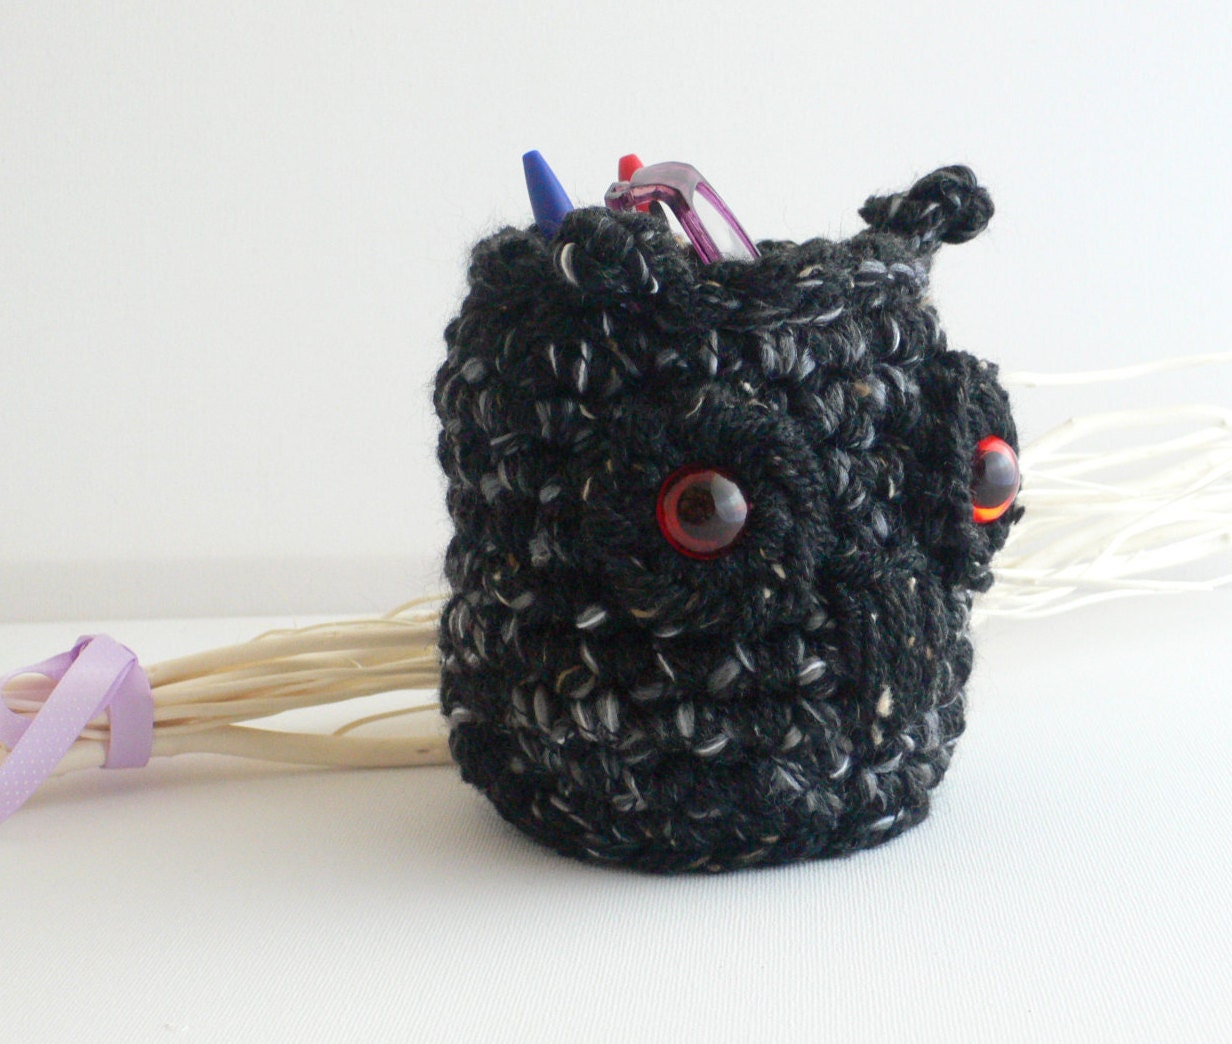 Crochet Owl Basket : Crochet Owl Basket Desk Tidy Cell Phone Holder by RockingPony